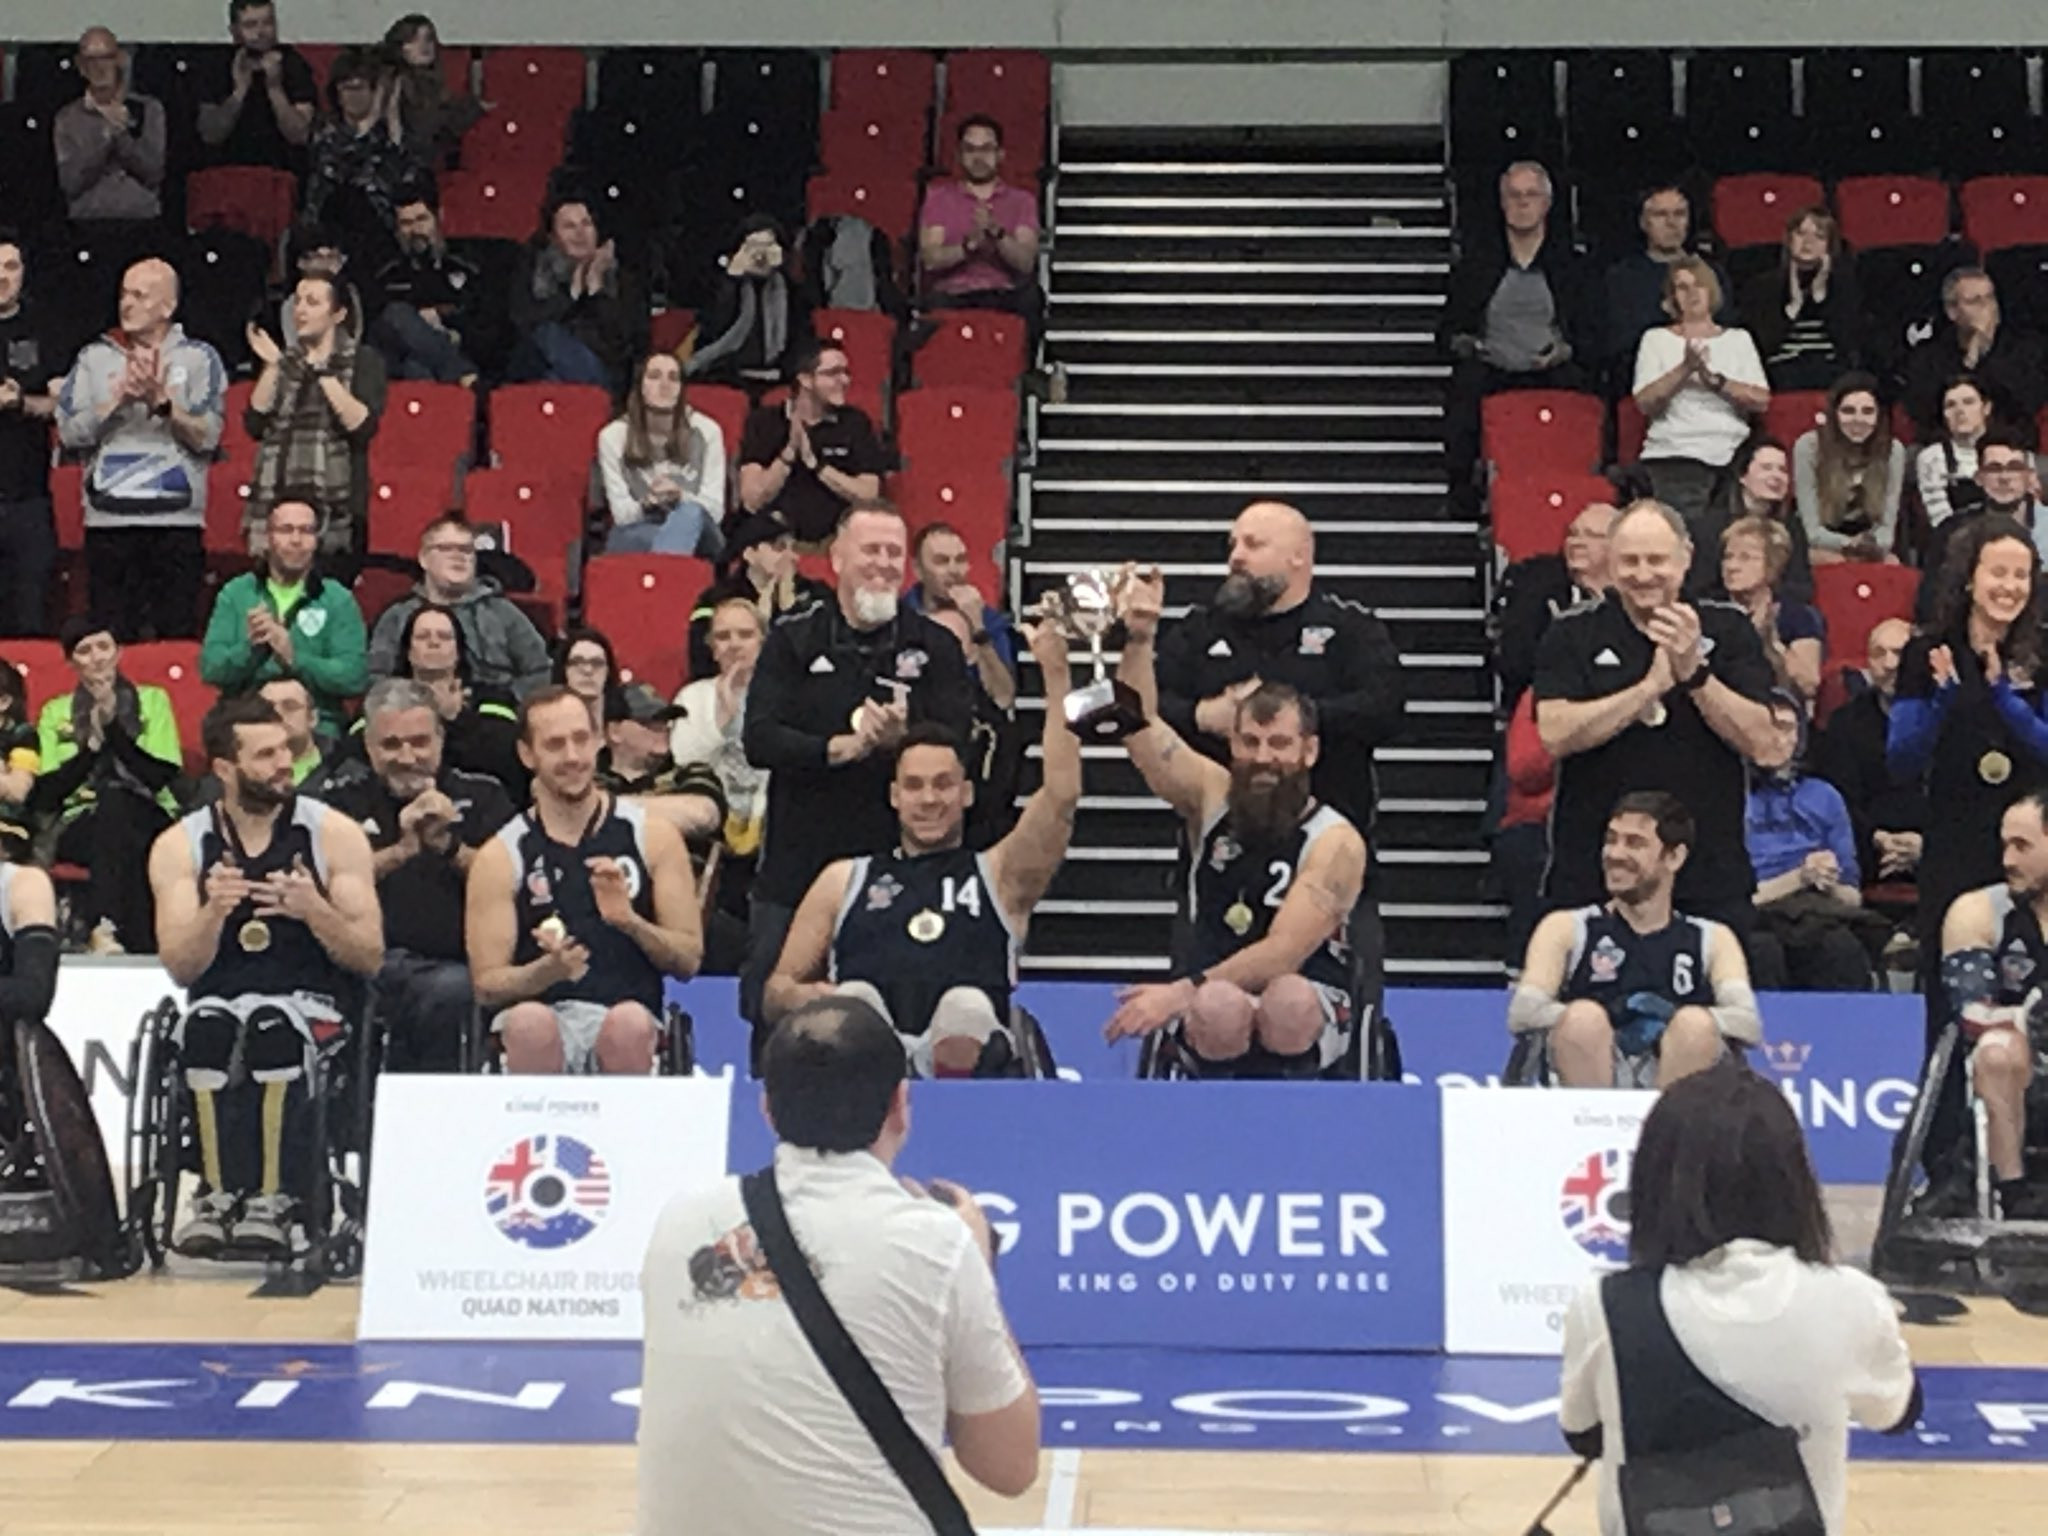 United States win Wheelchair Rugby Quad Nations title for second time